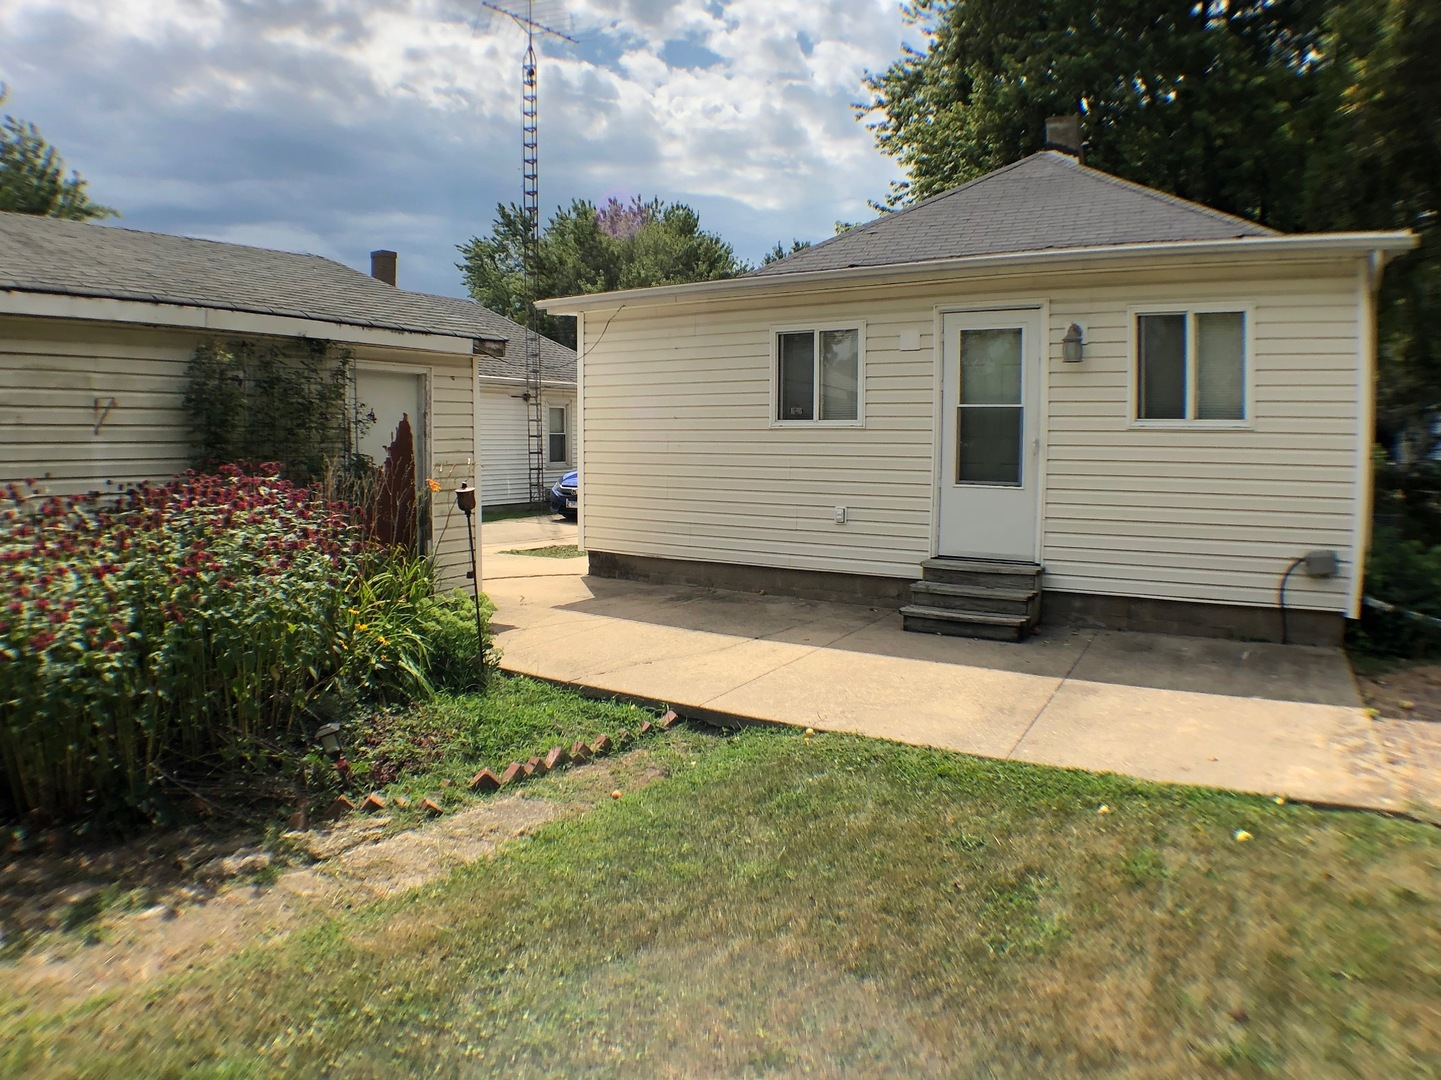 210 5th, Standard, Illinois, 61363